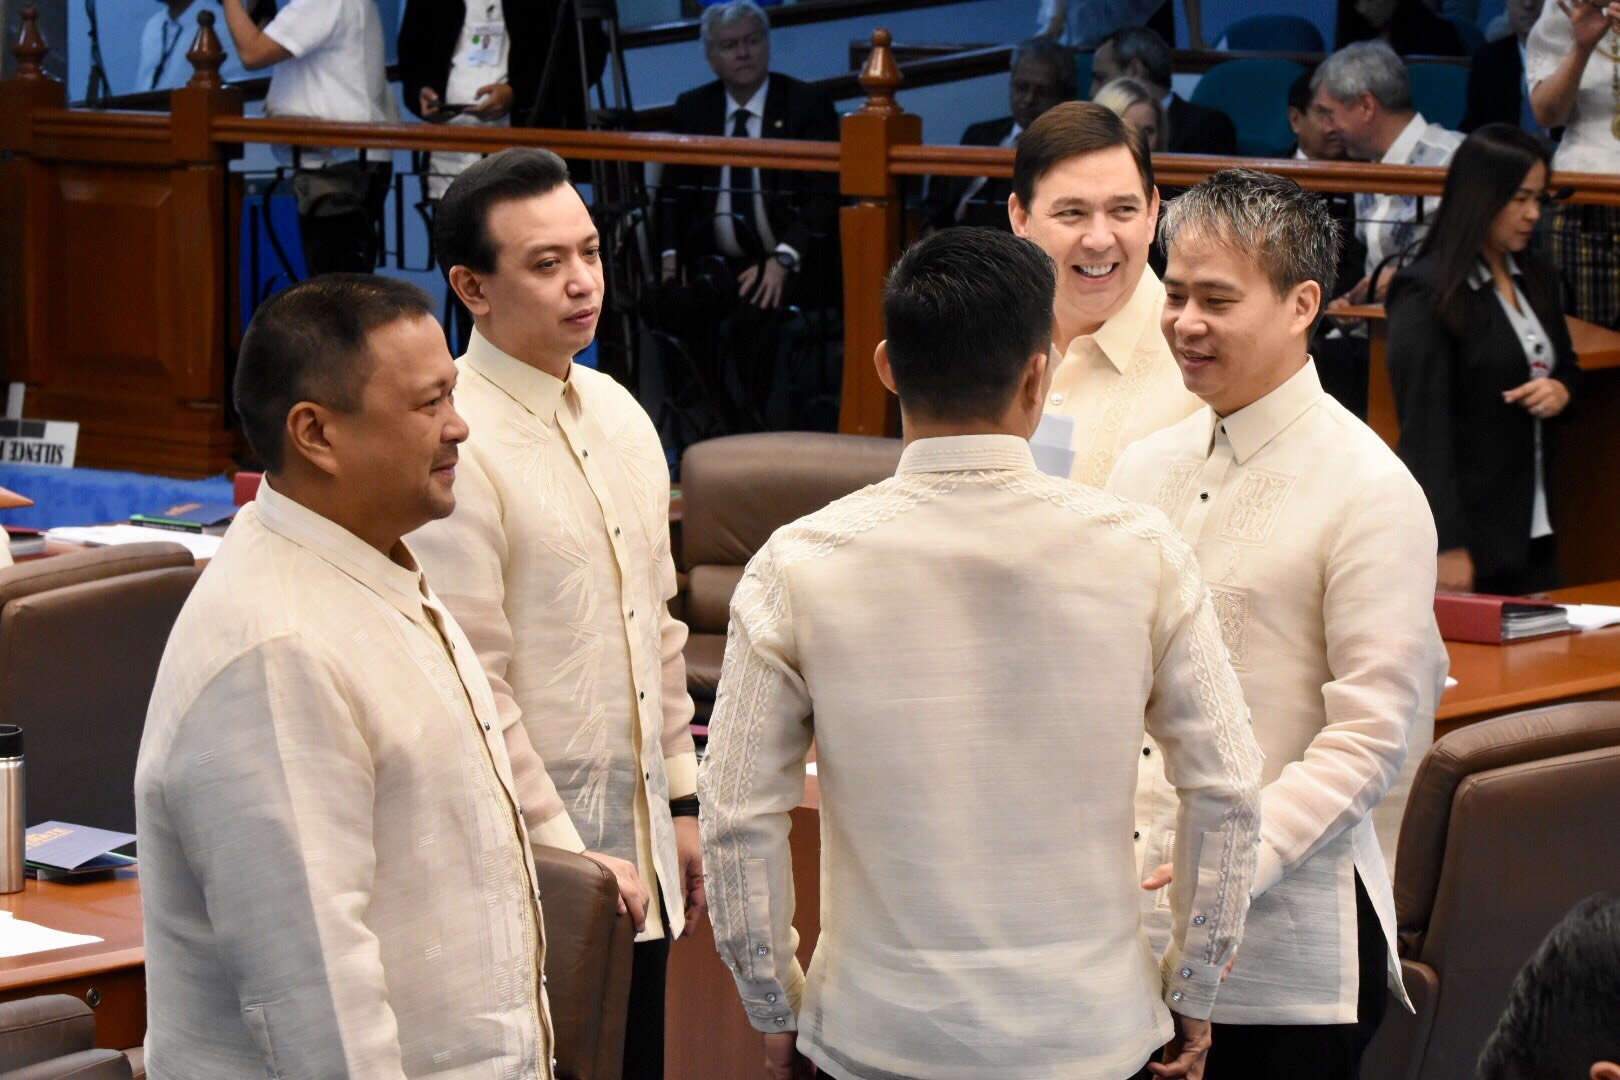 THE SENATE MEN. JV Ejercito, Antonio Trillanes, Joel Villanueva, and Ralph Recto.